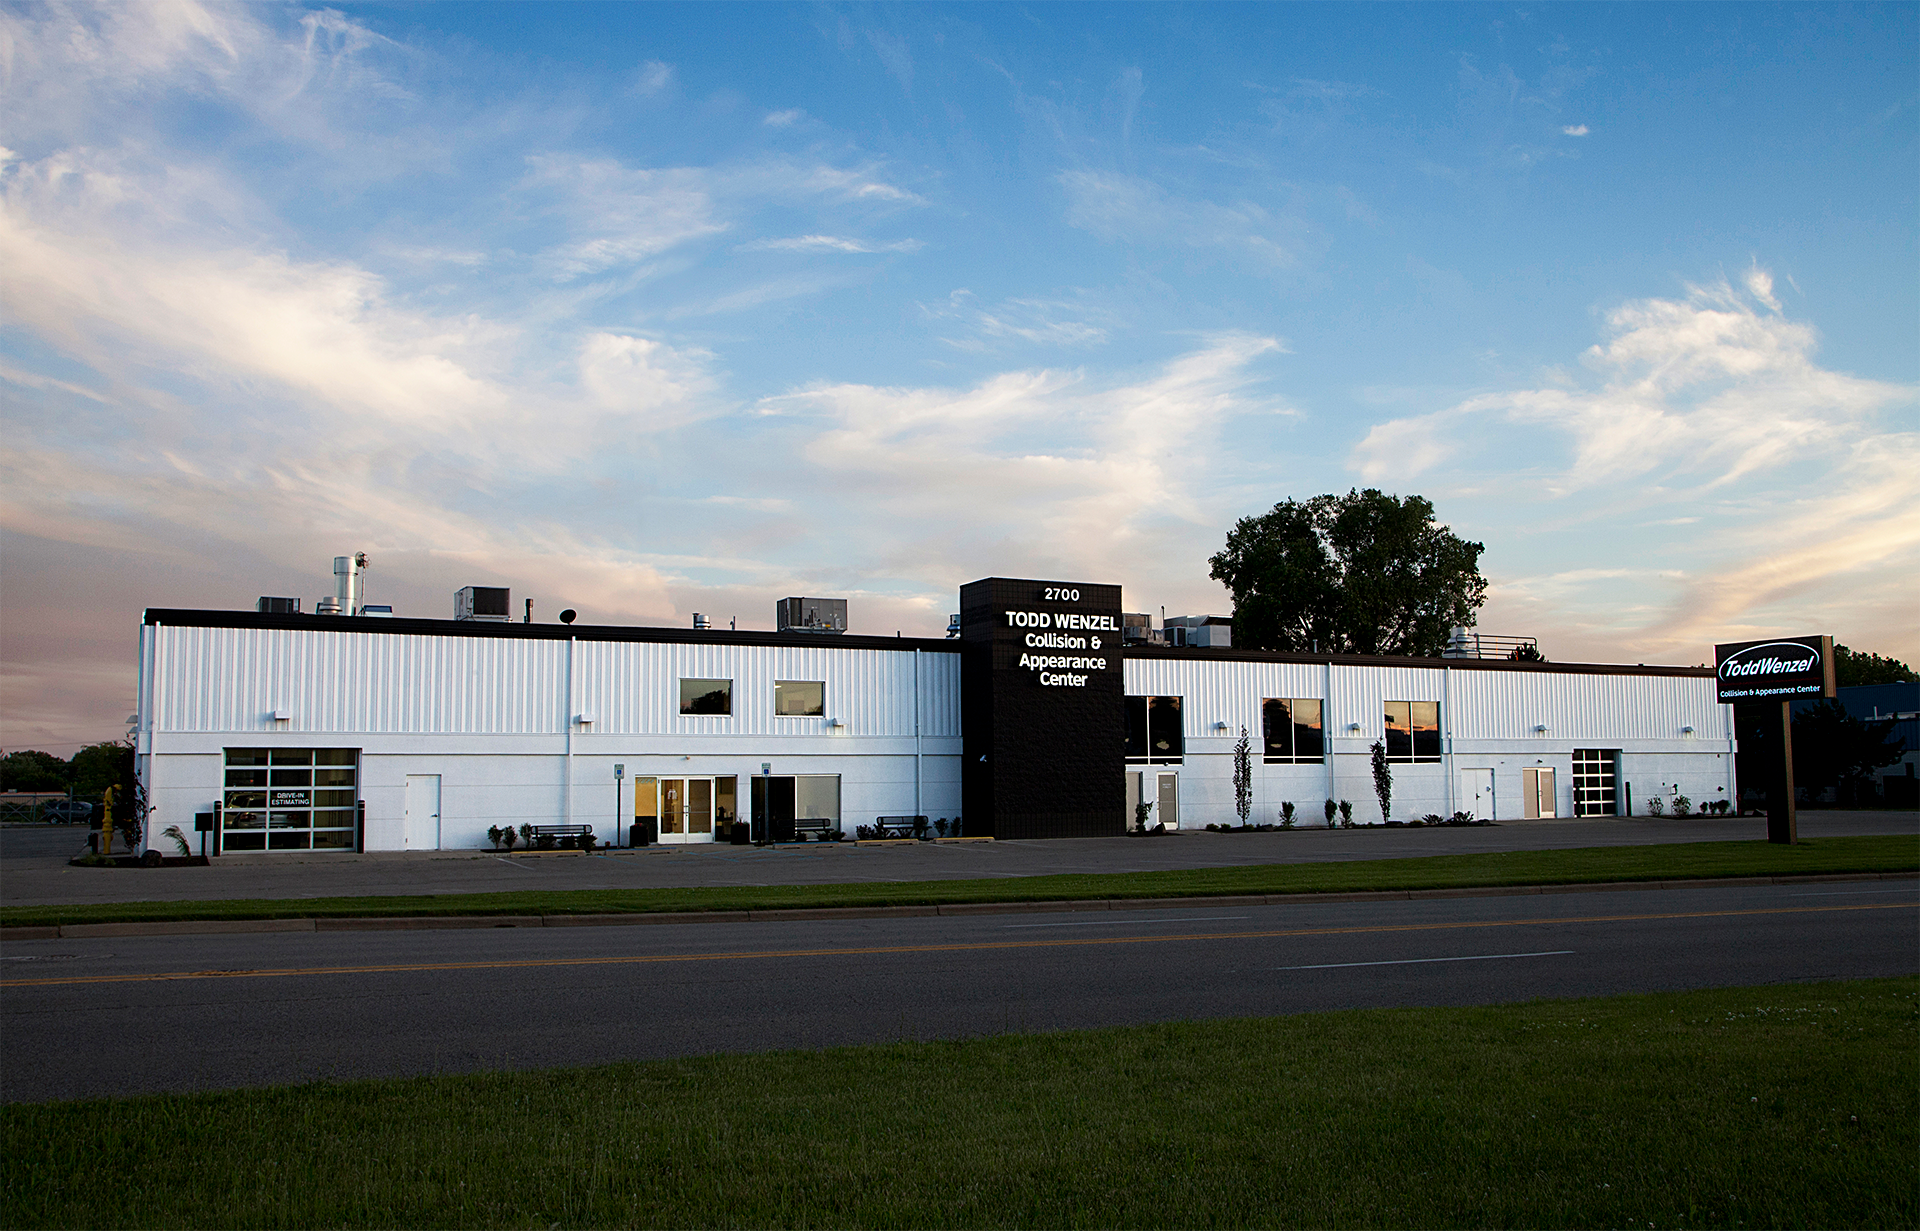 todd wenzel collision and appearance center 29th street